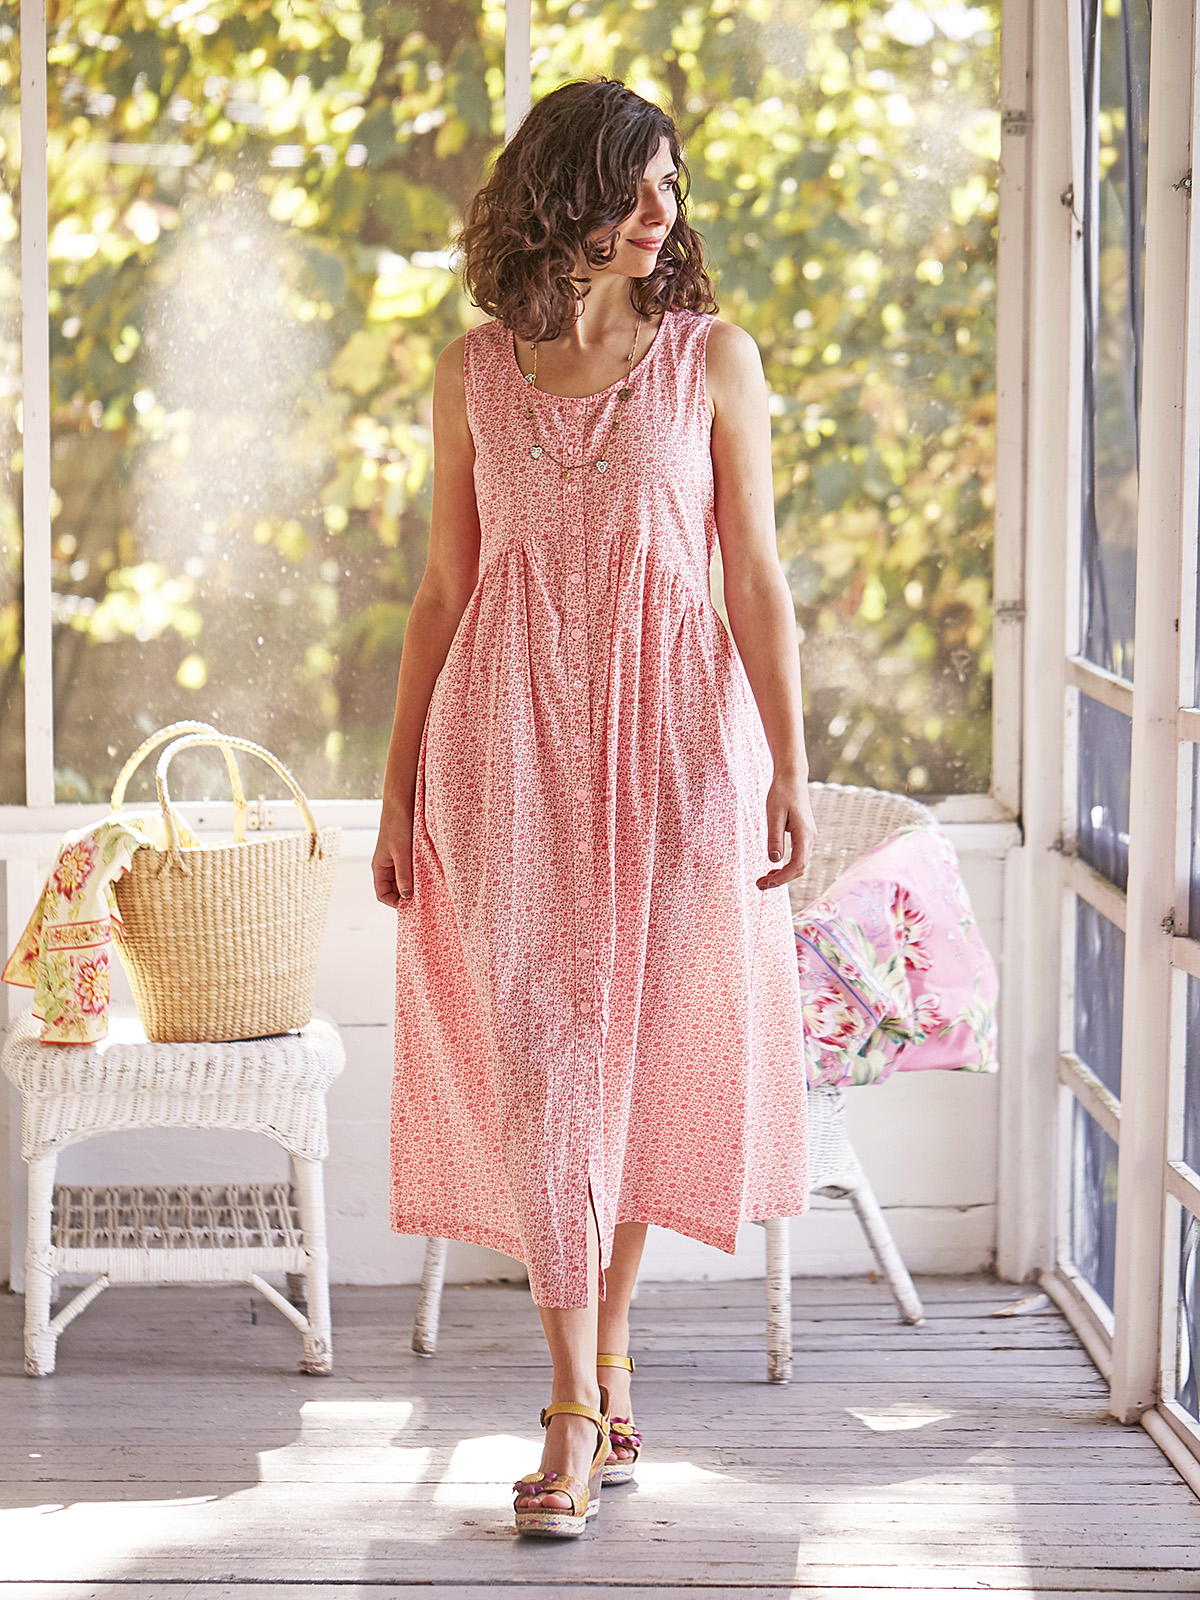 Forget Me Not Sundress